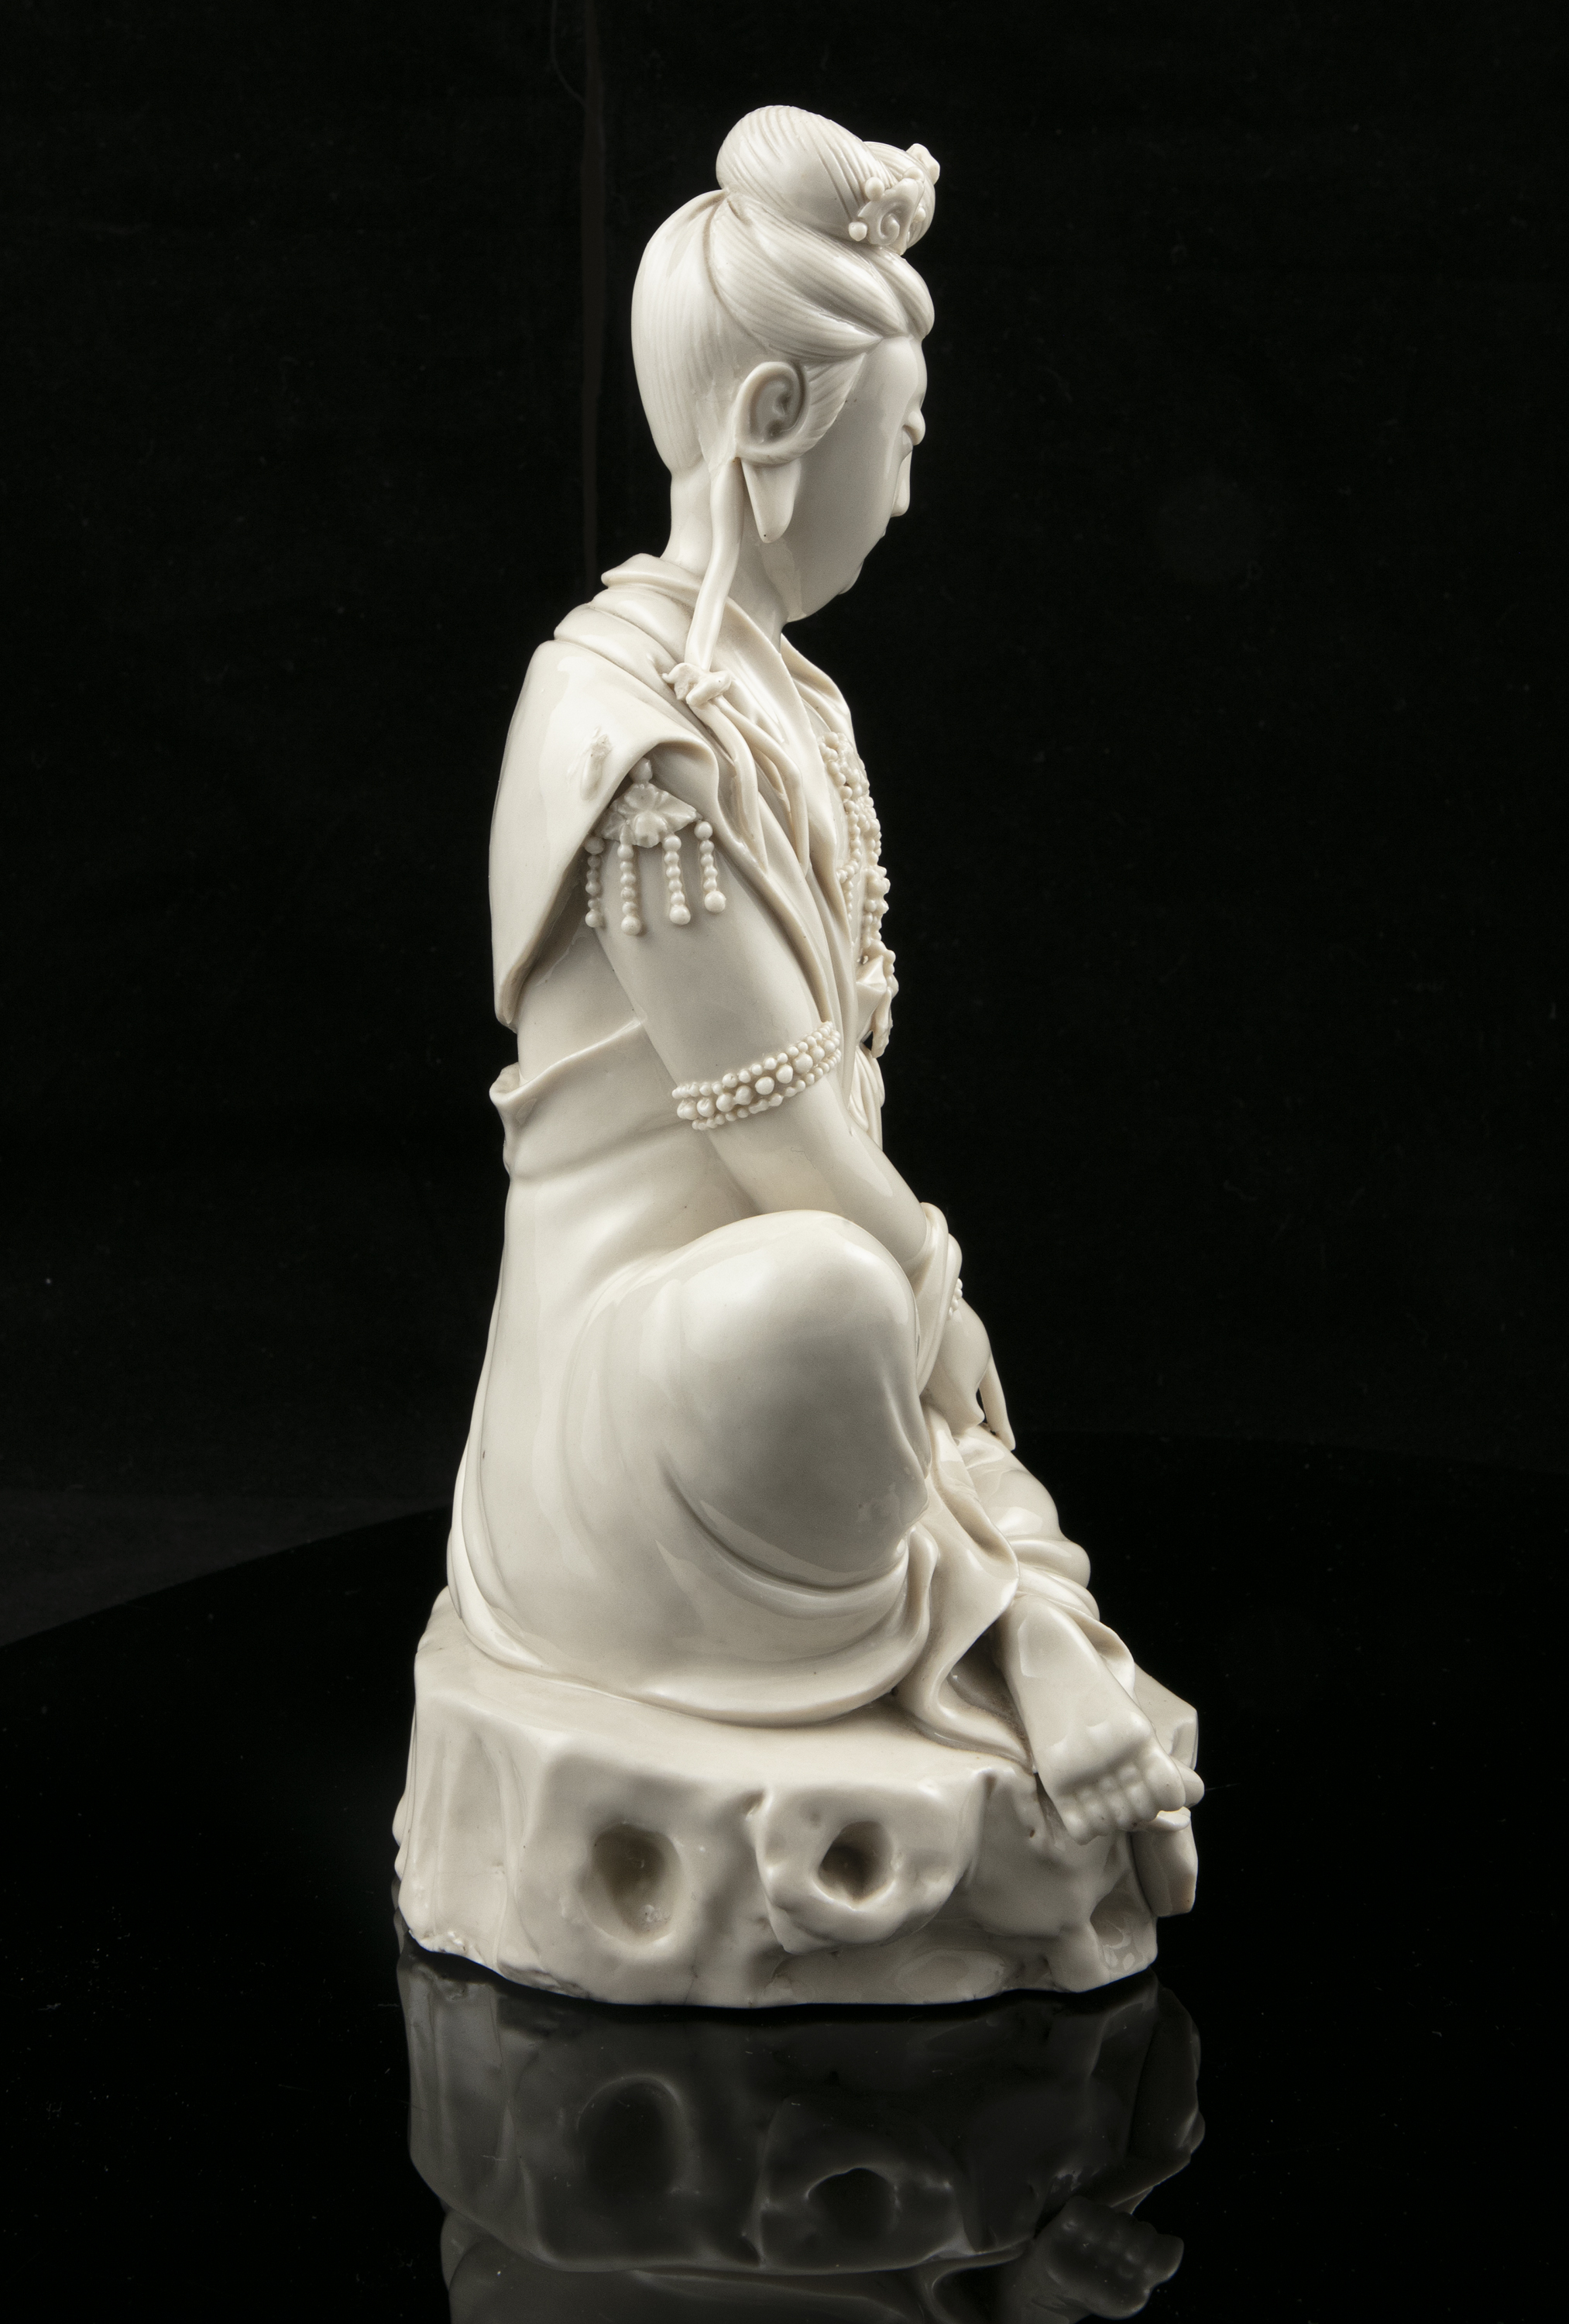 A LARGE DEHUA FIGURE OF A SEATED GUANYIN IMPRESSED WITH A HE CHAOZONG 何朝宗 CALABASH SHAPED SEAL - Image 26 of 48